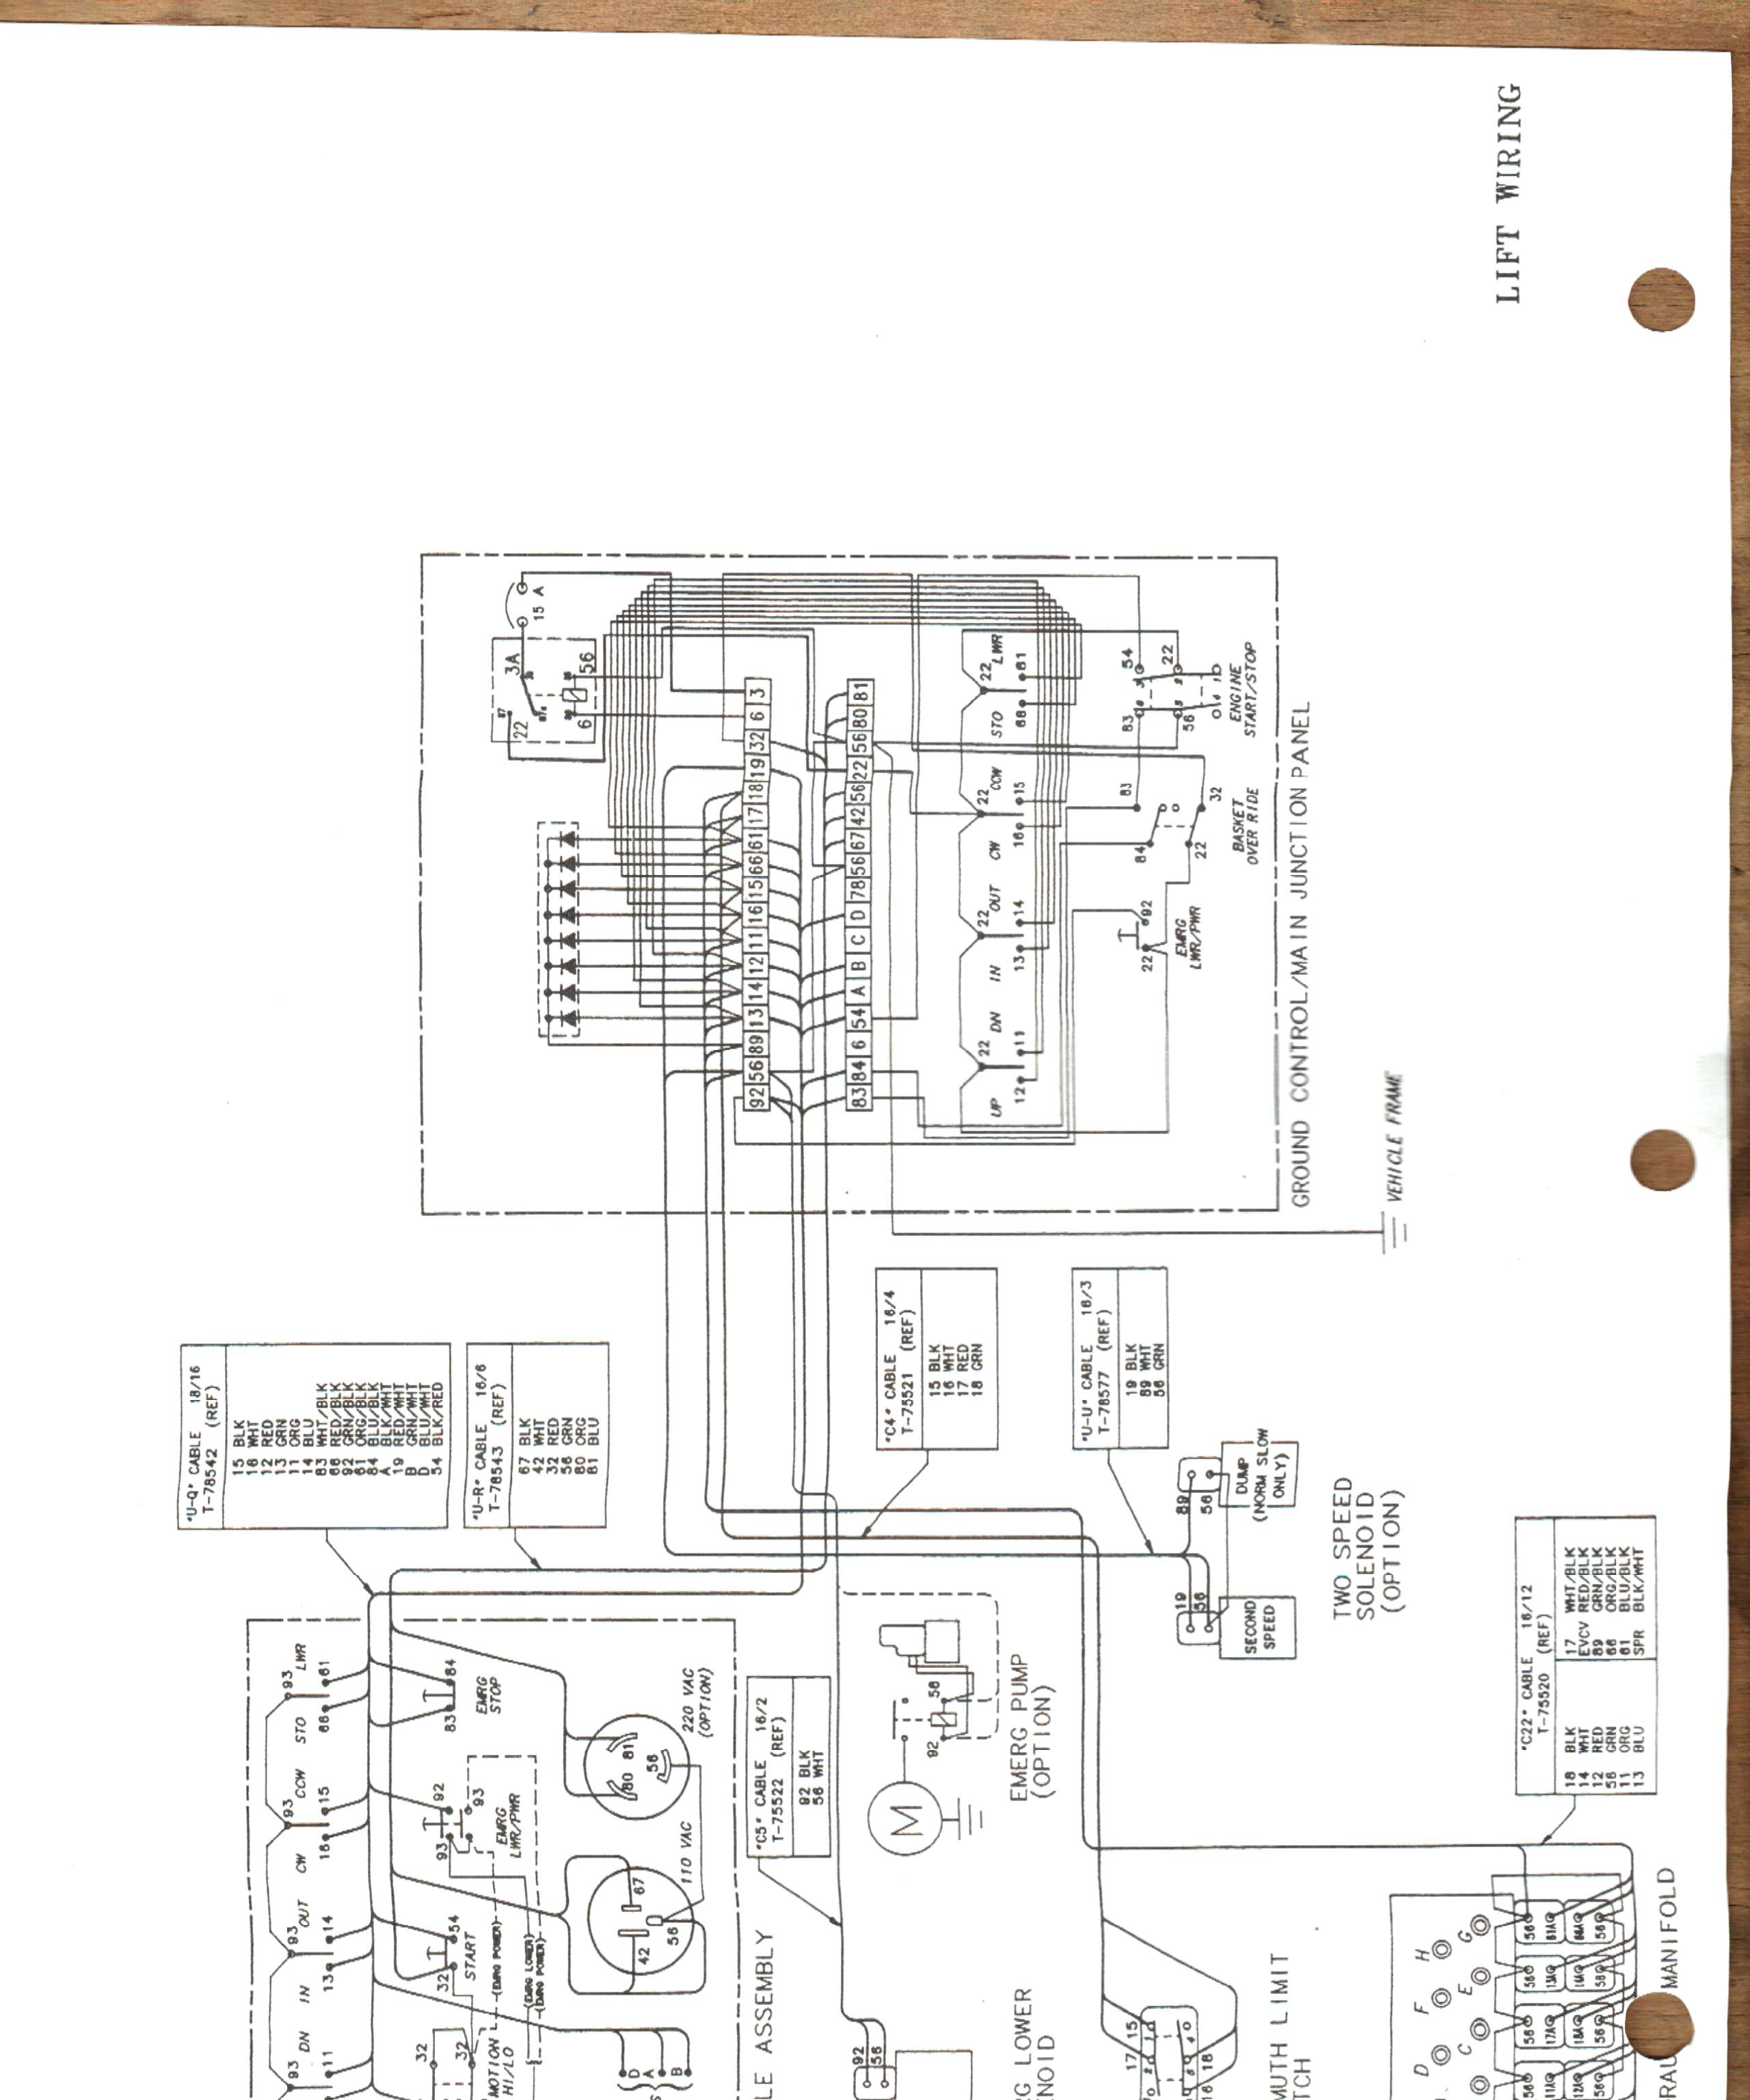 2013 12 10_064845_telsta_001 i need a wiring schematic for a 28 ft telsta bucket truck telsta t40c wiring diagram at n-0.co